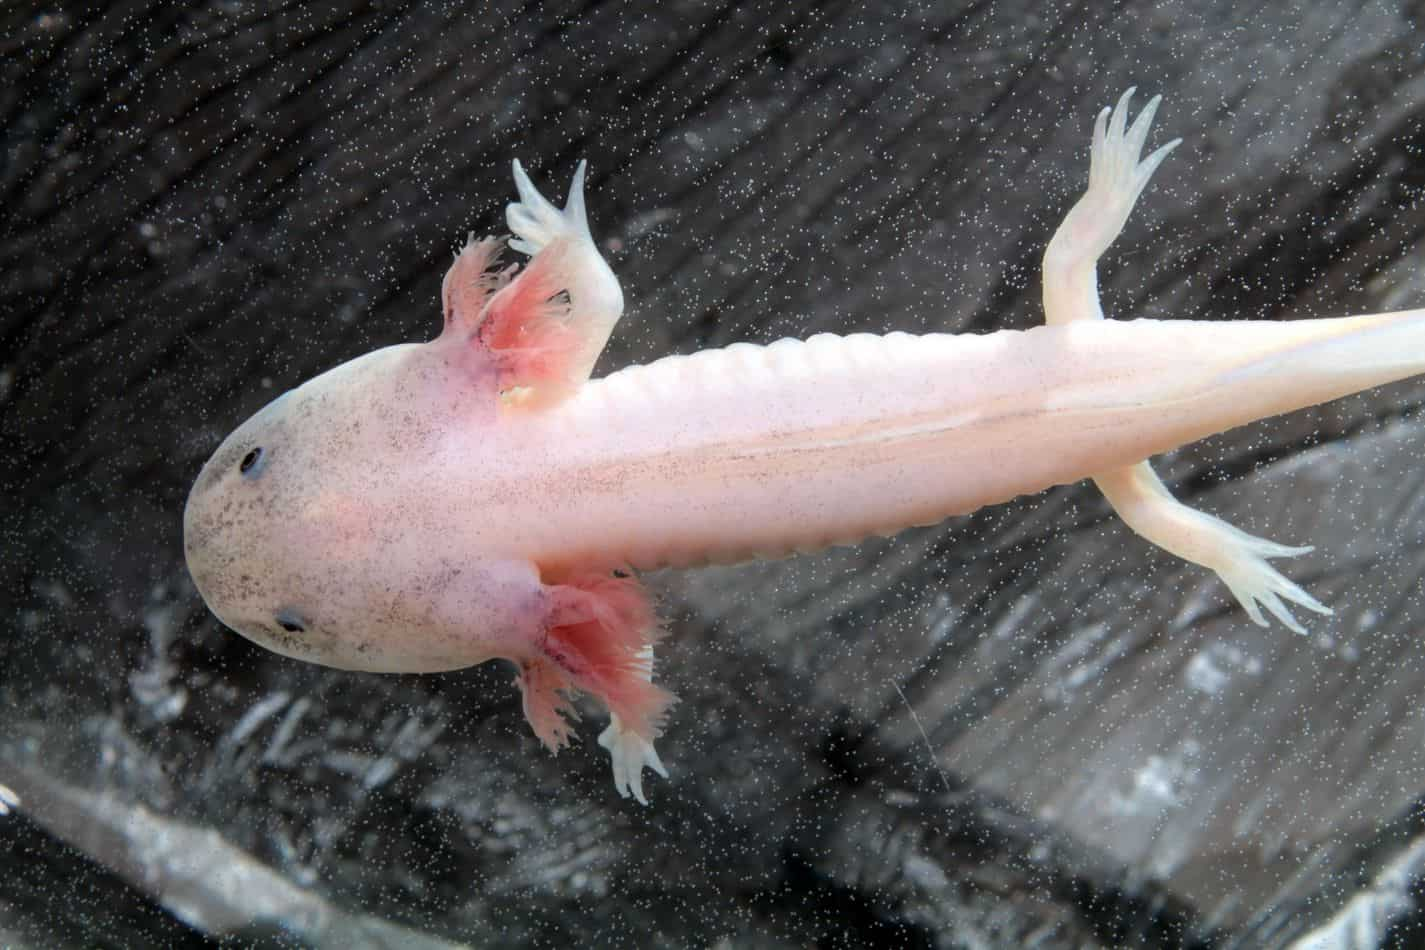 Axolotls as Pets: Cost to Get One, Ease of Care, and Limb Regrowth